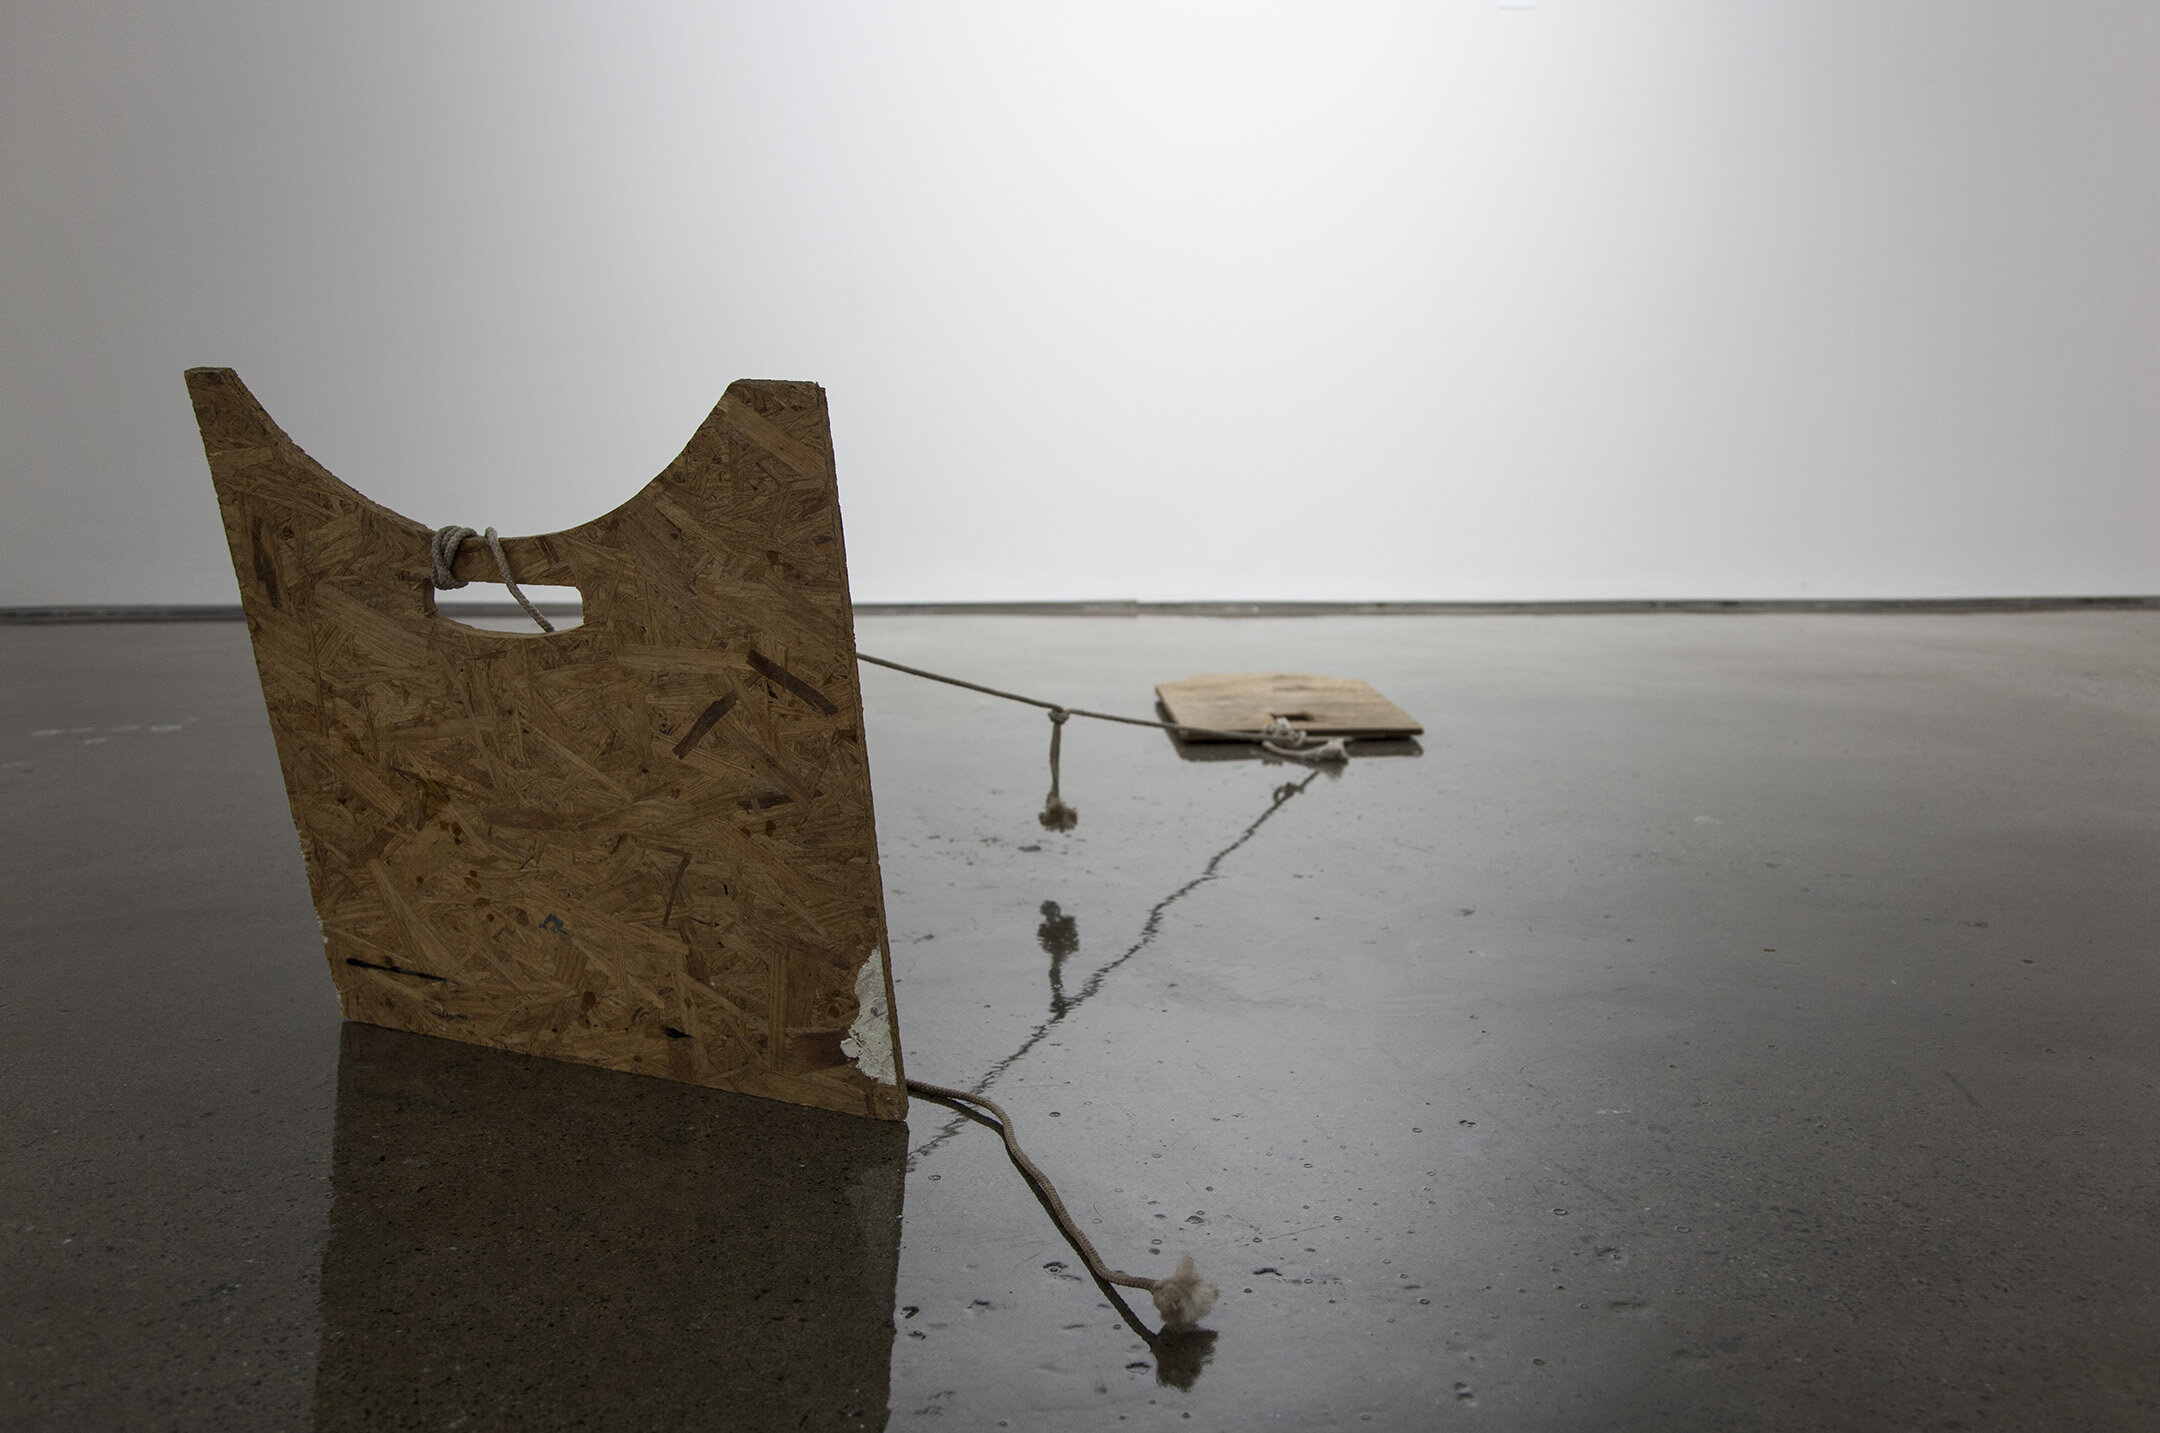 Tethered Boards , 2015, rope, wood, 108 x 24 x 24 inches.